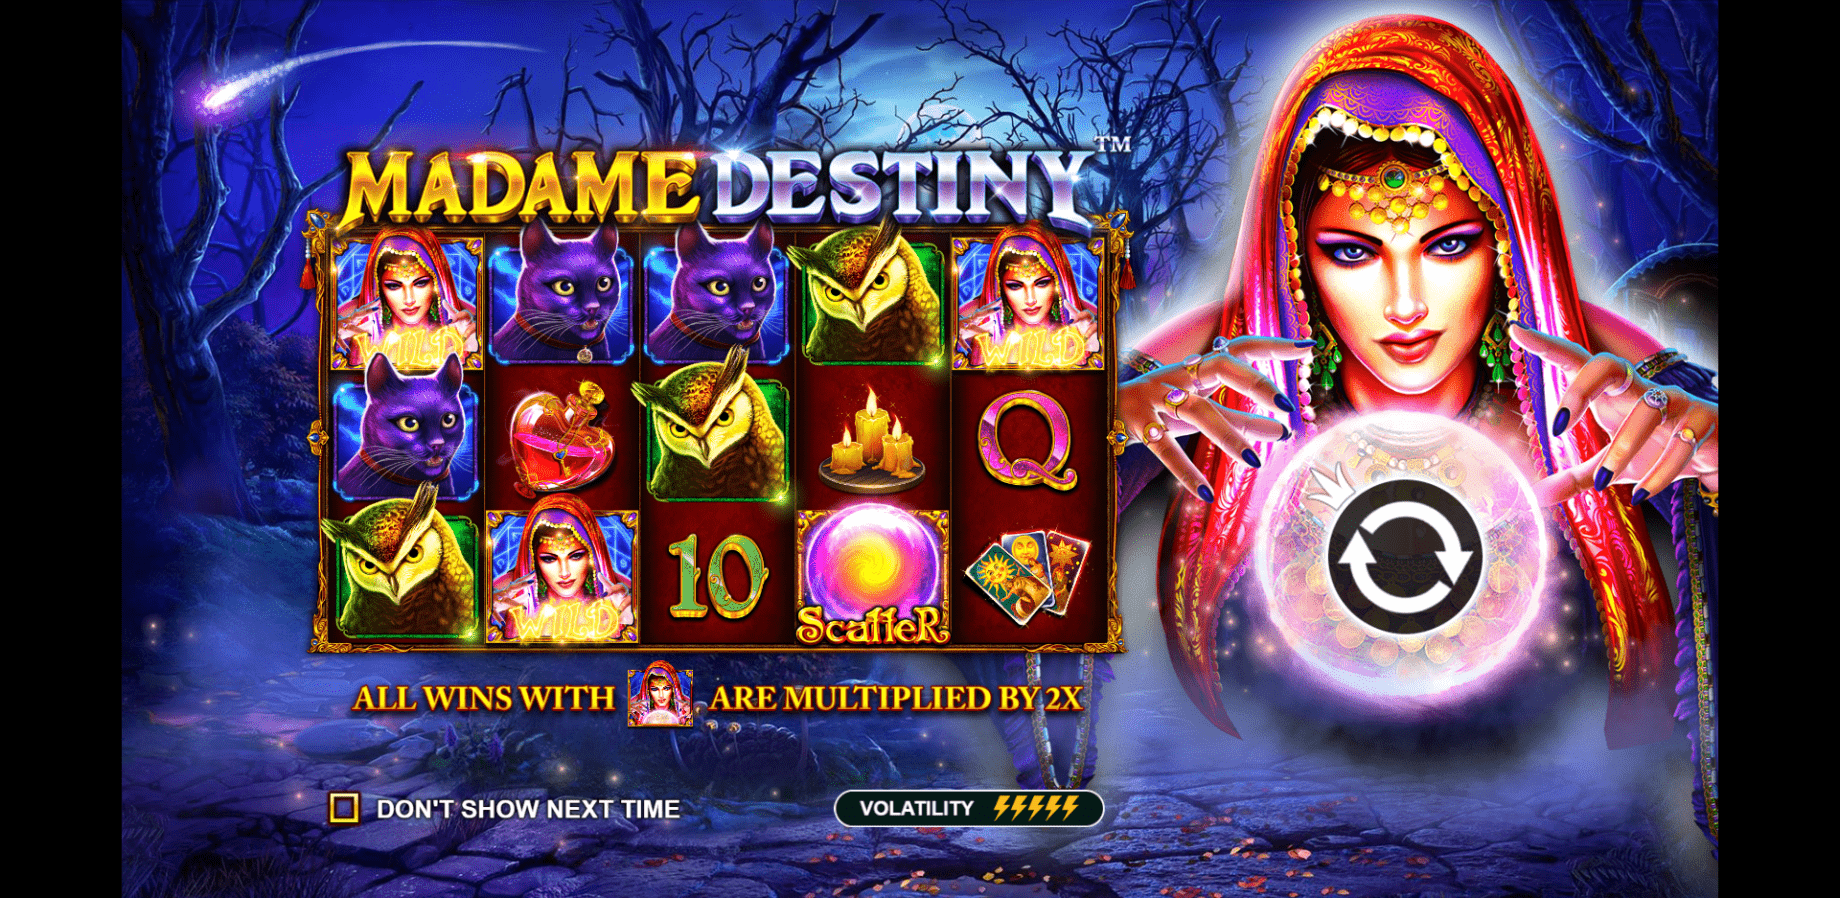 Madame Destiny video slot welcome screen